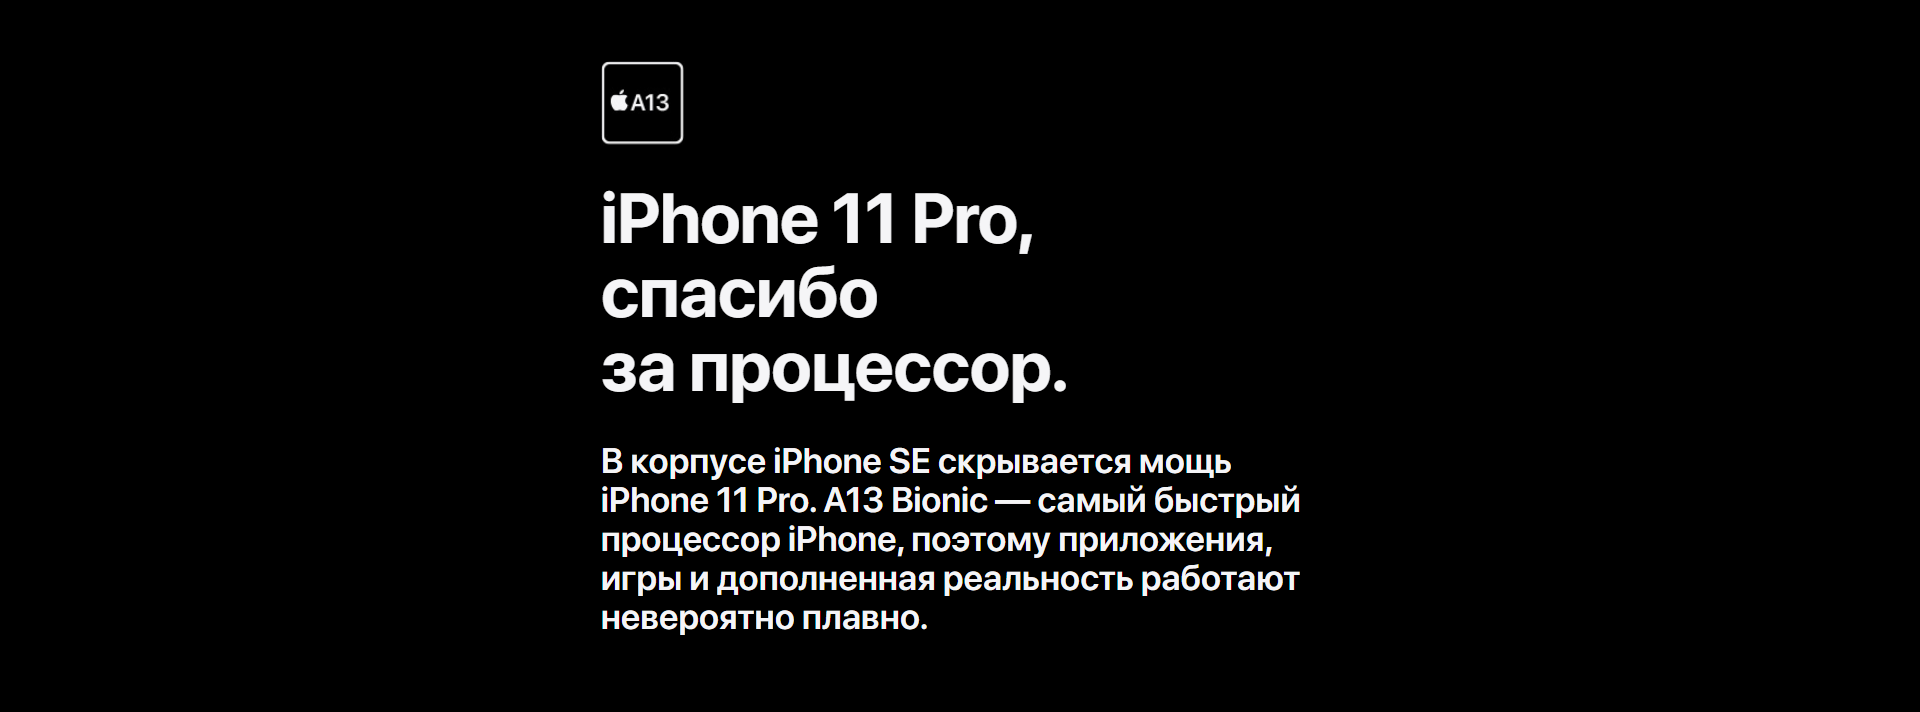 iPhone SE – Apple (RU)_3